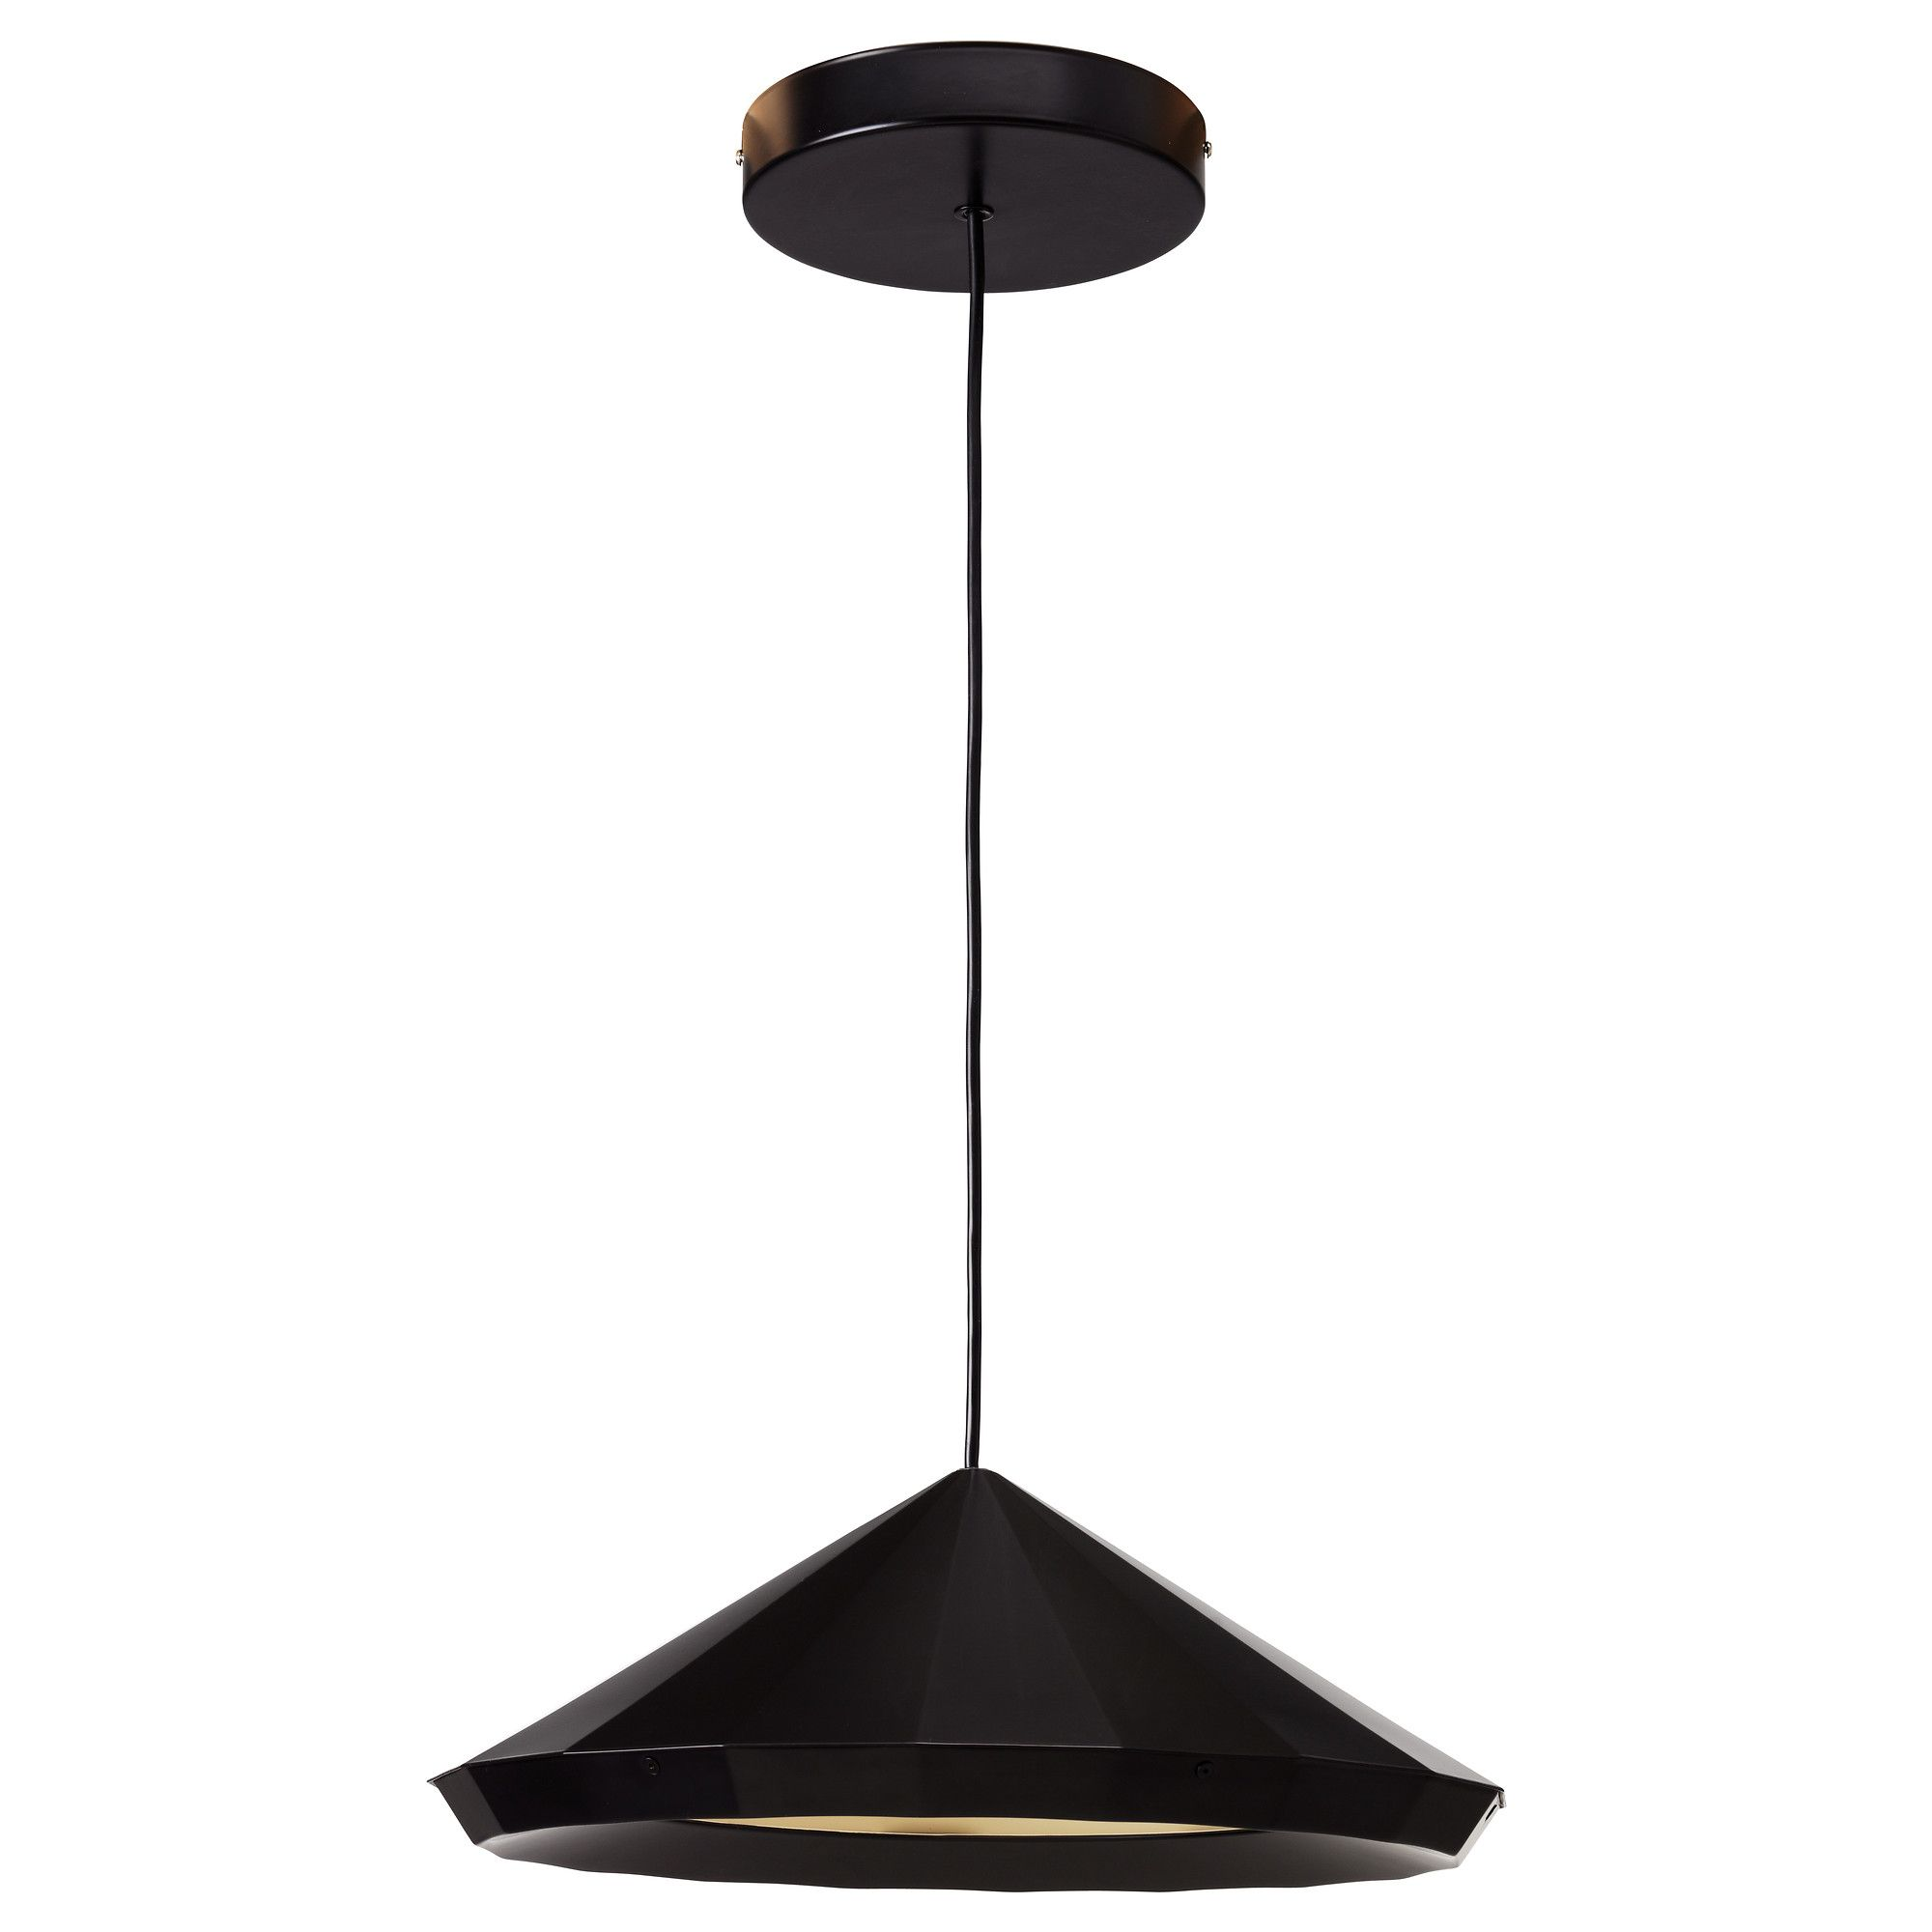 Ikea Light Pendant Ikea Ps 2012 Led Pendant Lamp Black Ikea Income